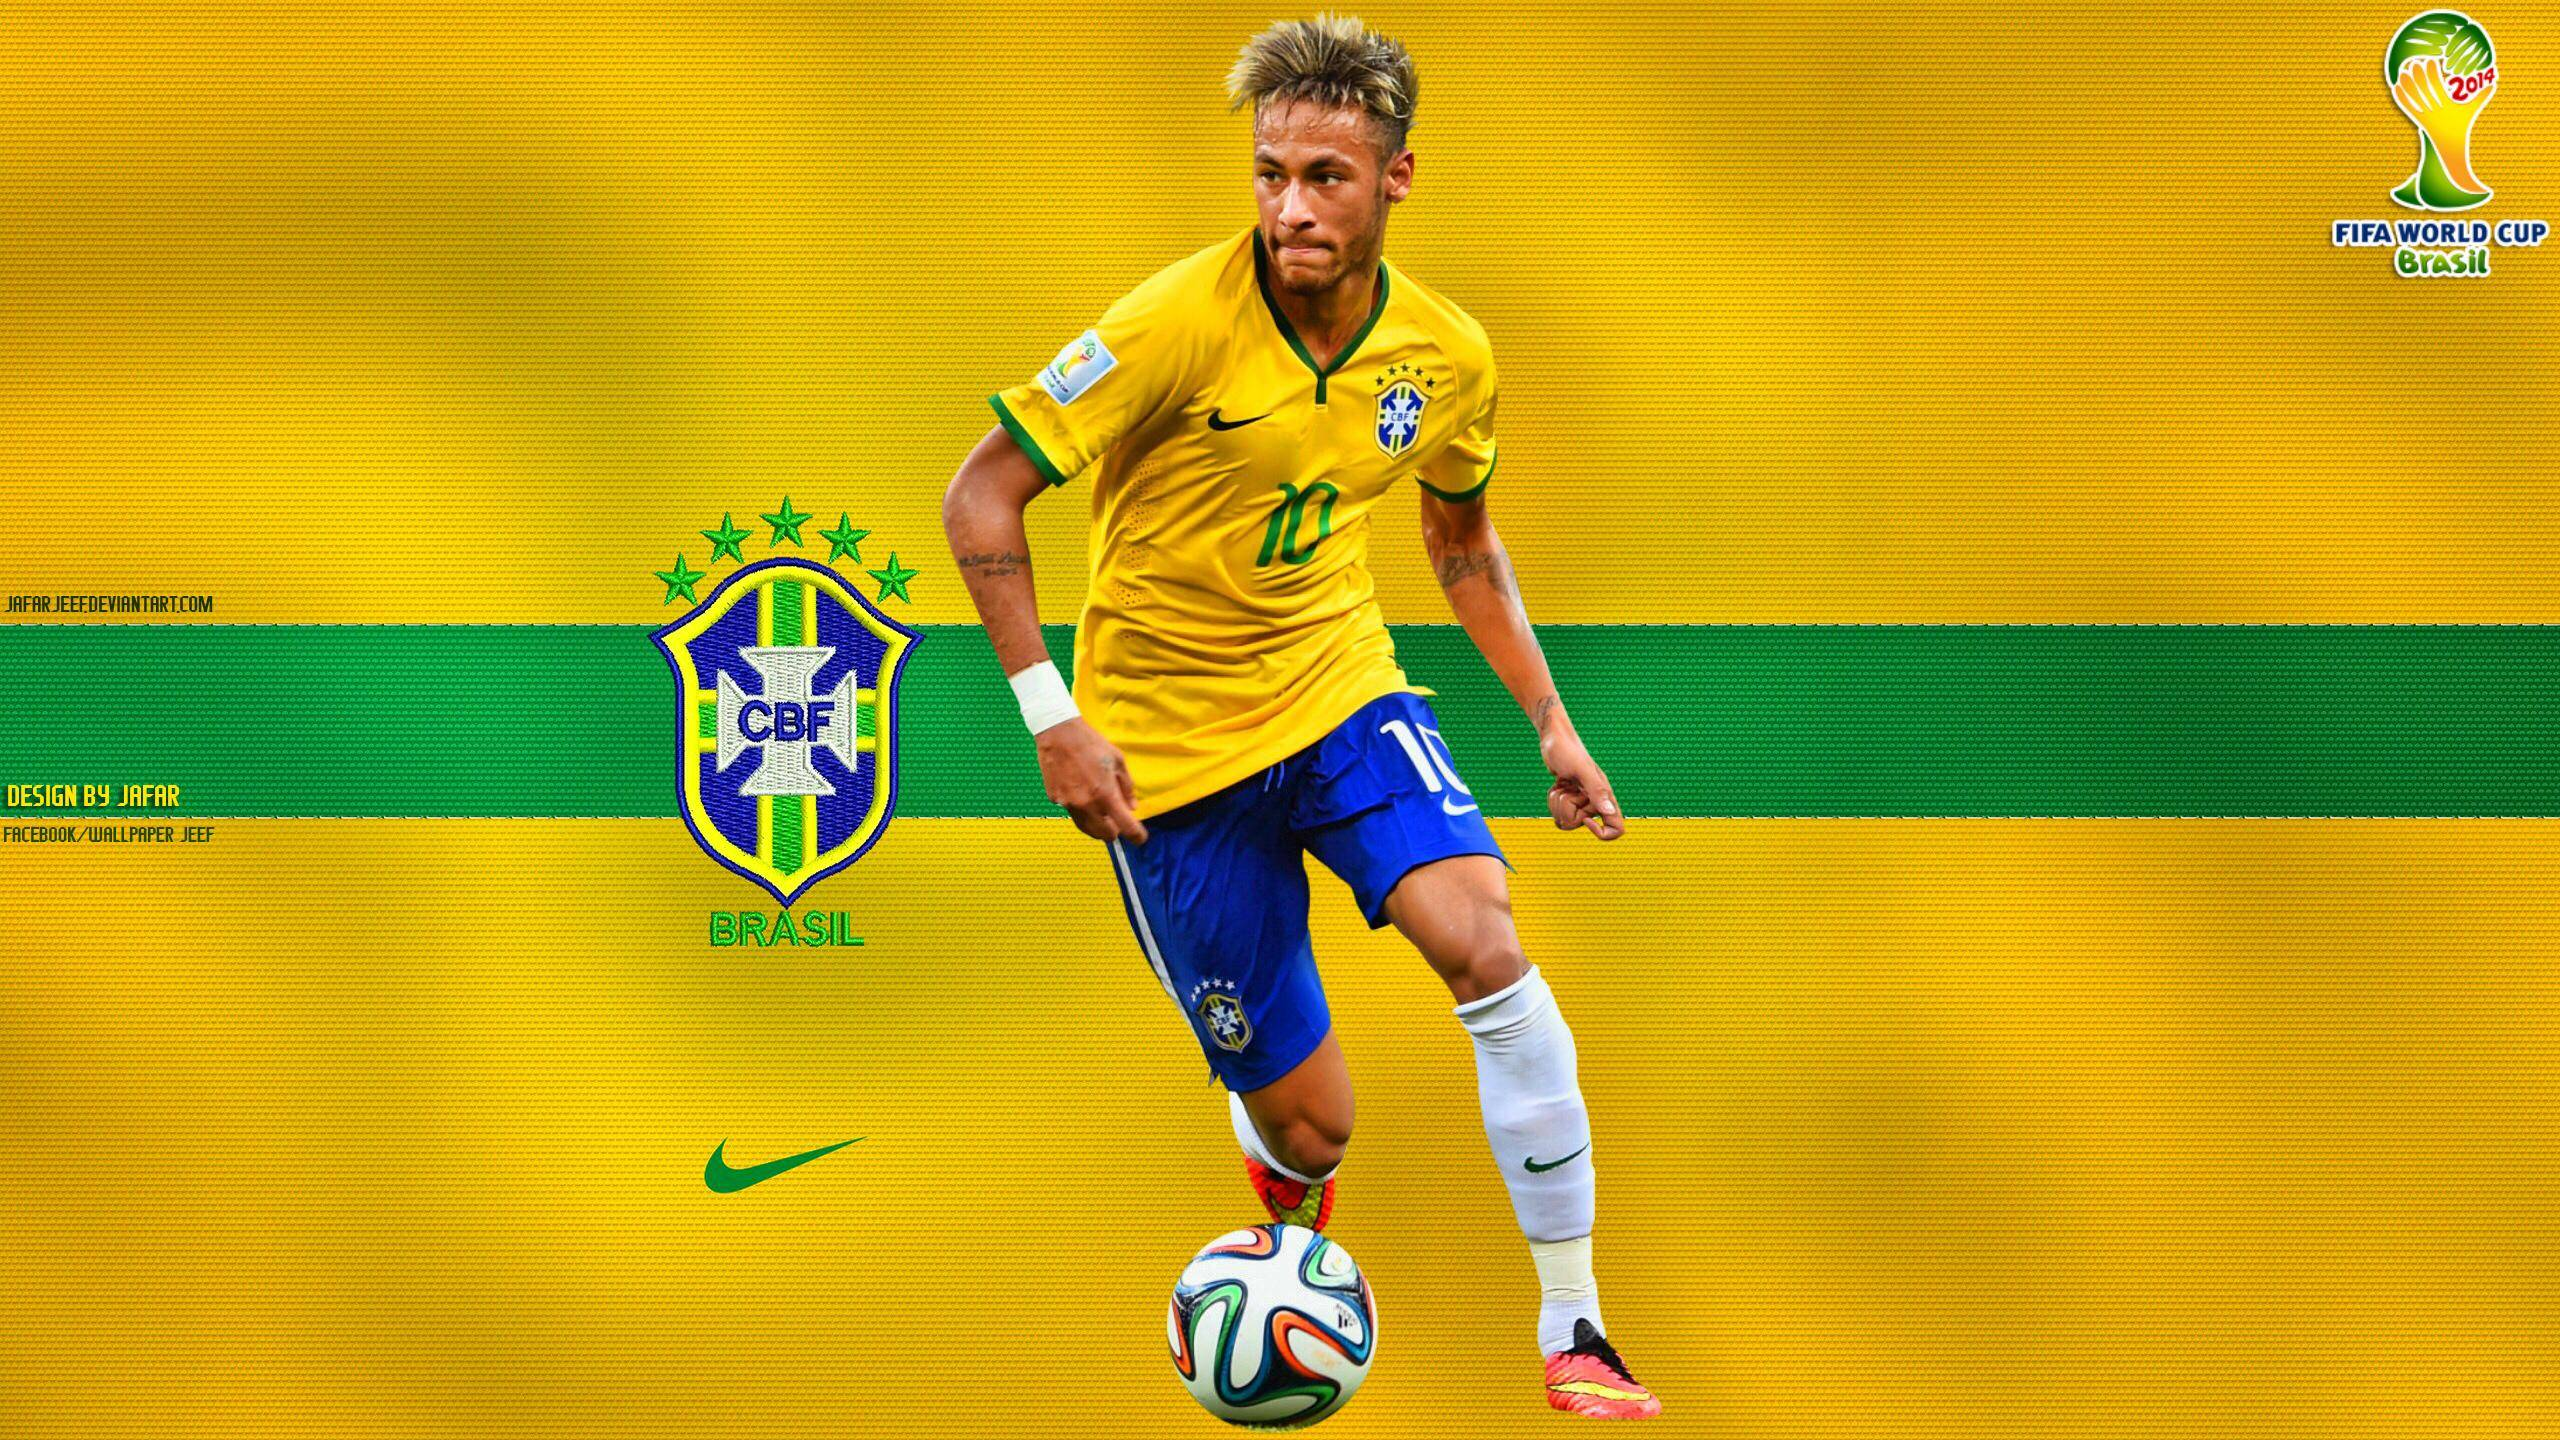 Hd wallpaper neymar - Neymar Jr Hd Wallpapers Tanukinosippo